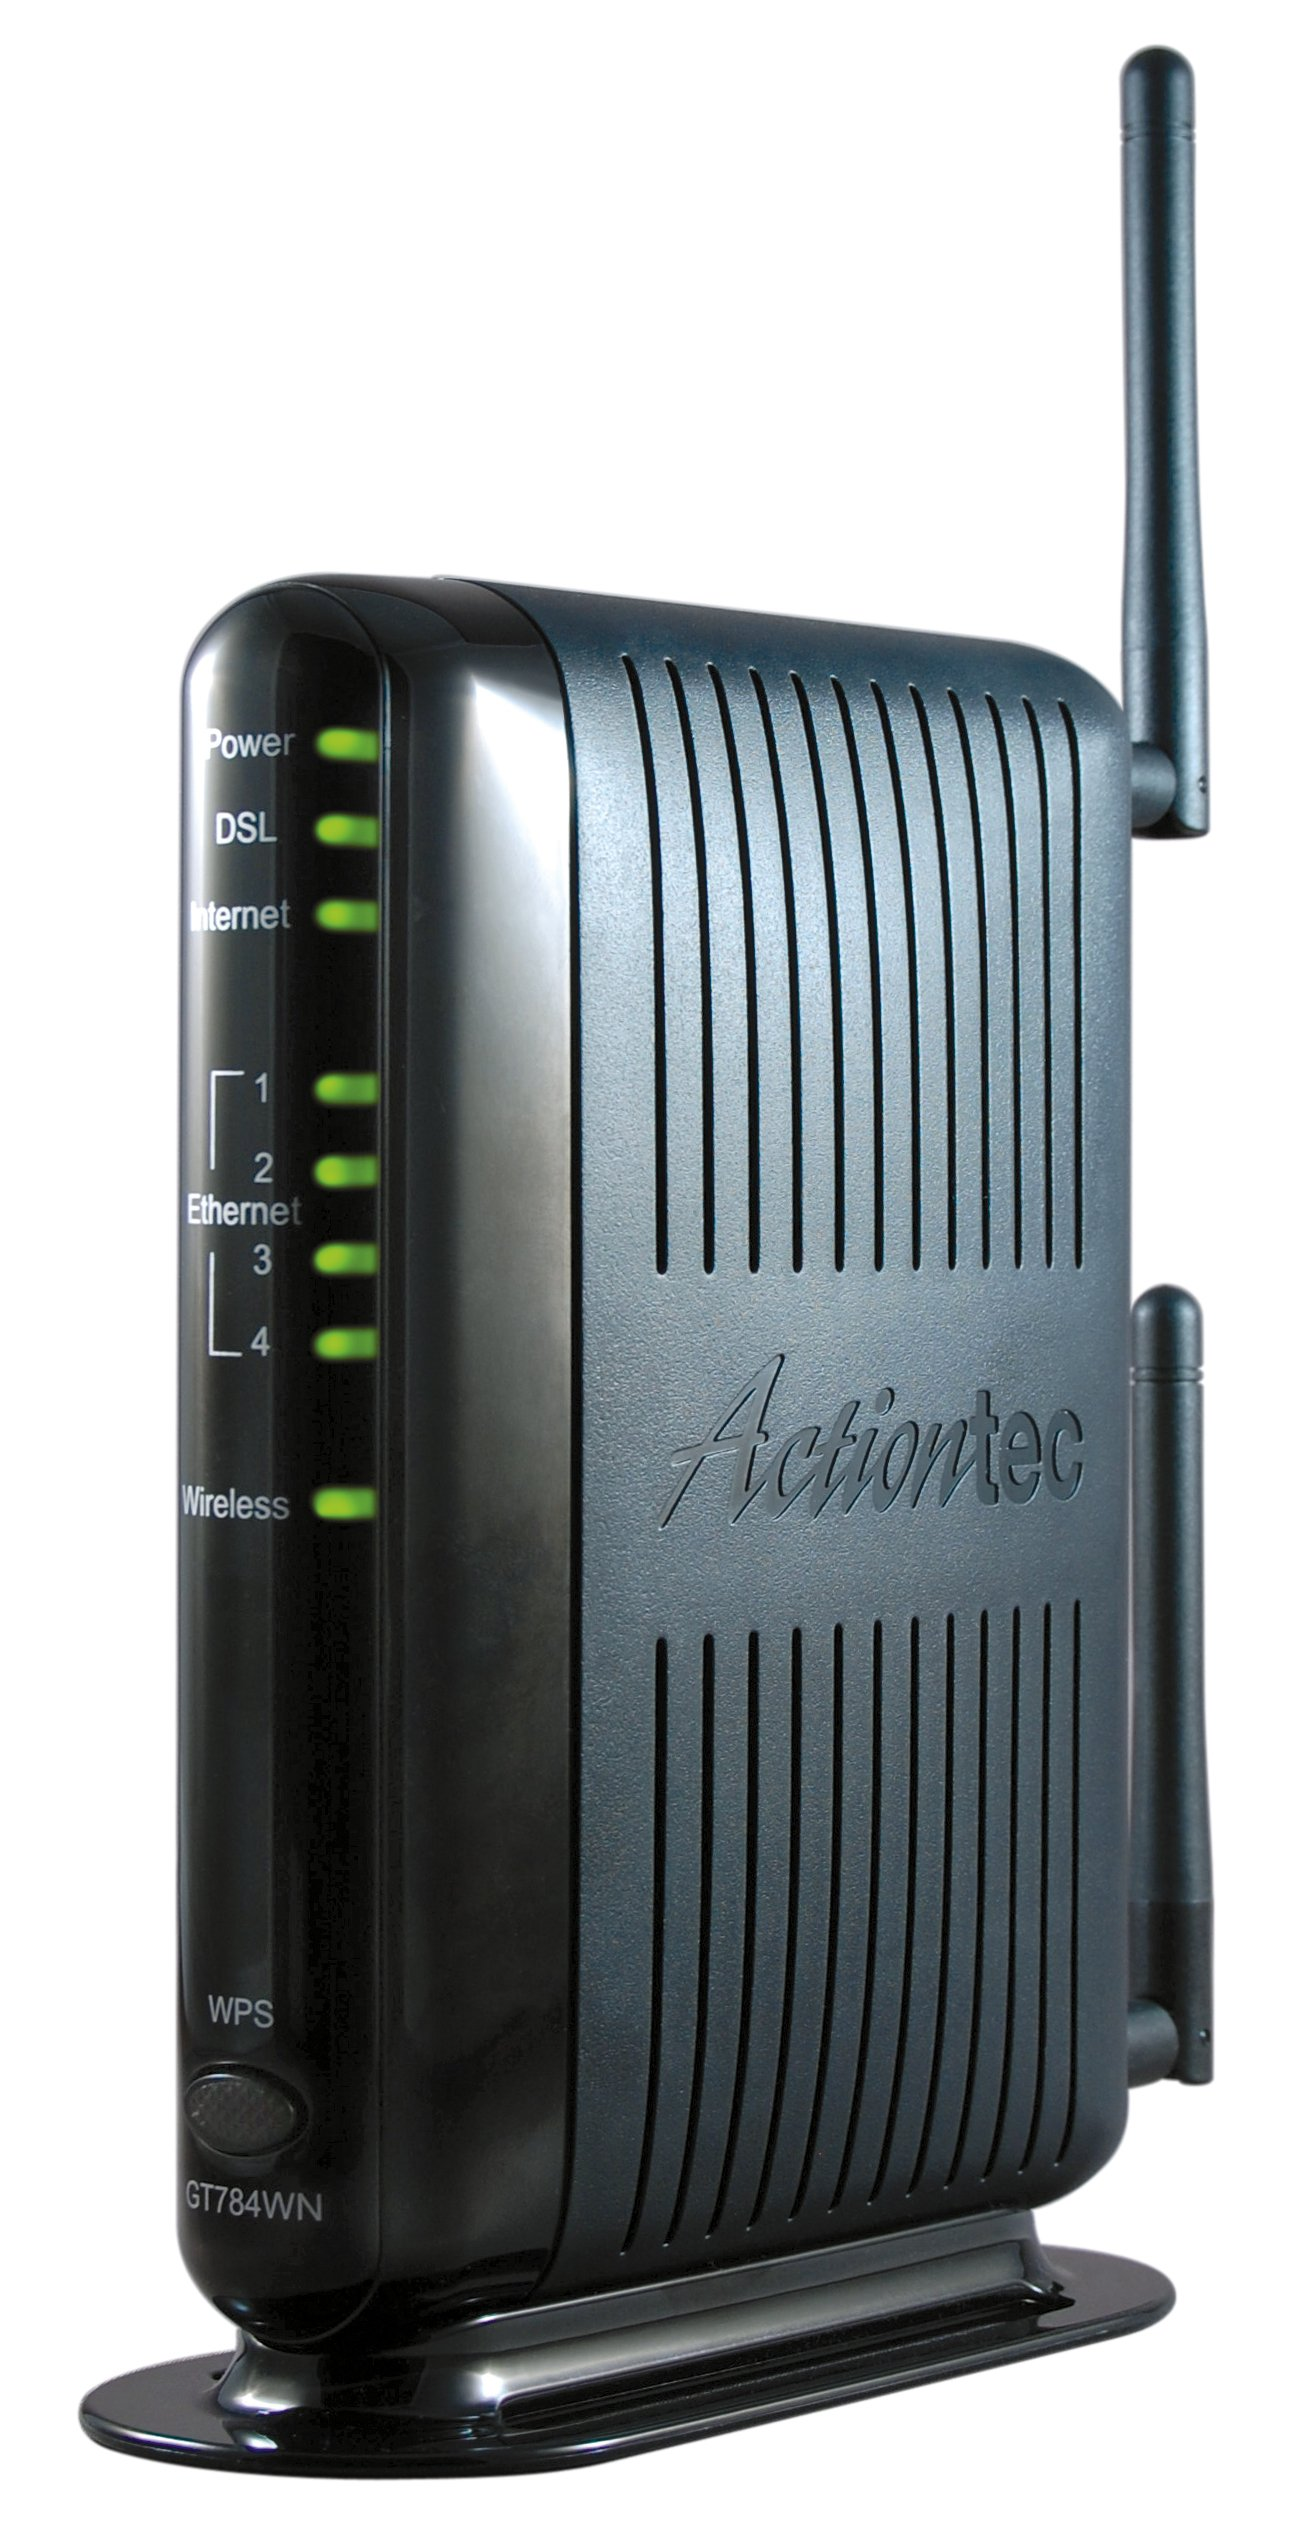 Actiontec 300 Mbps Wireless-N ADSL Modem Router (GT784WN) by Actiontec